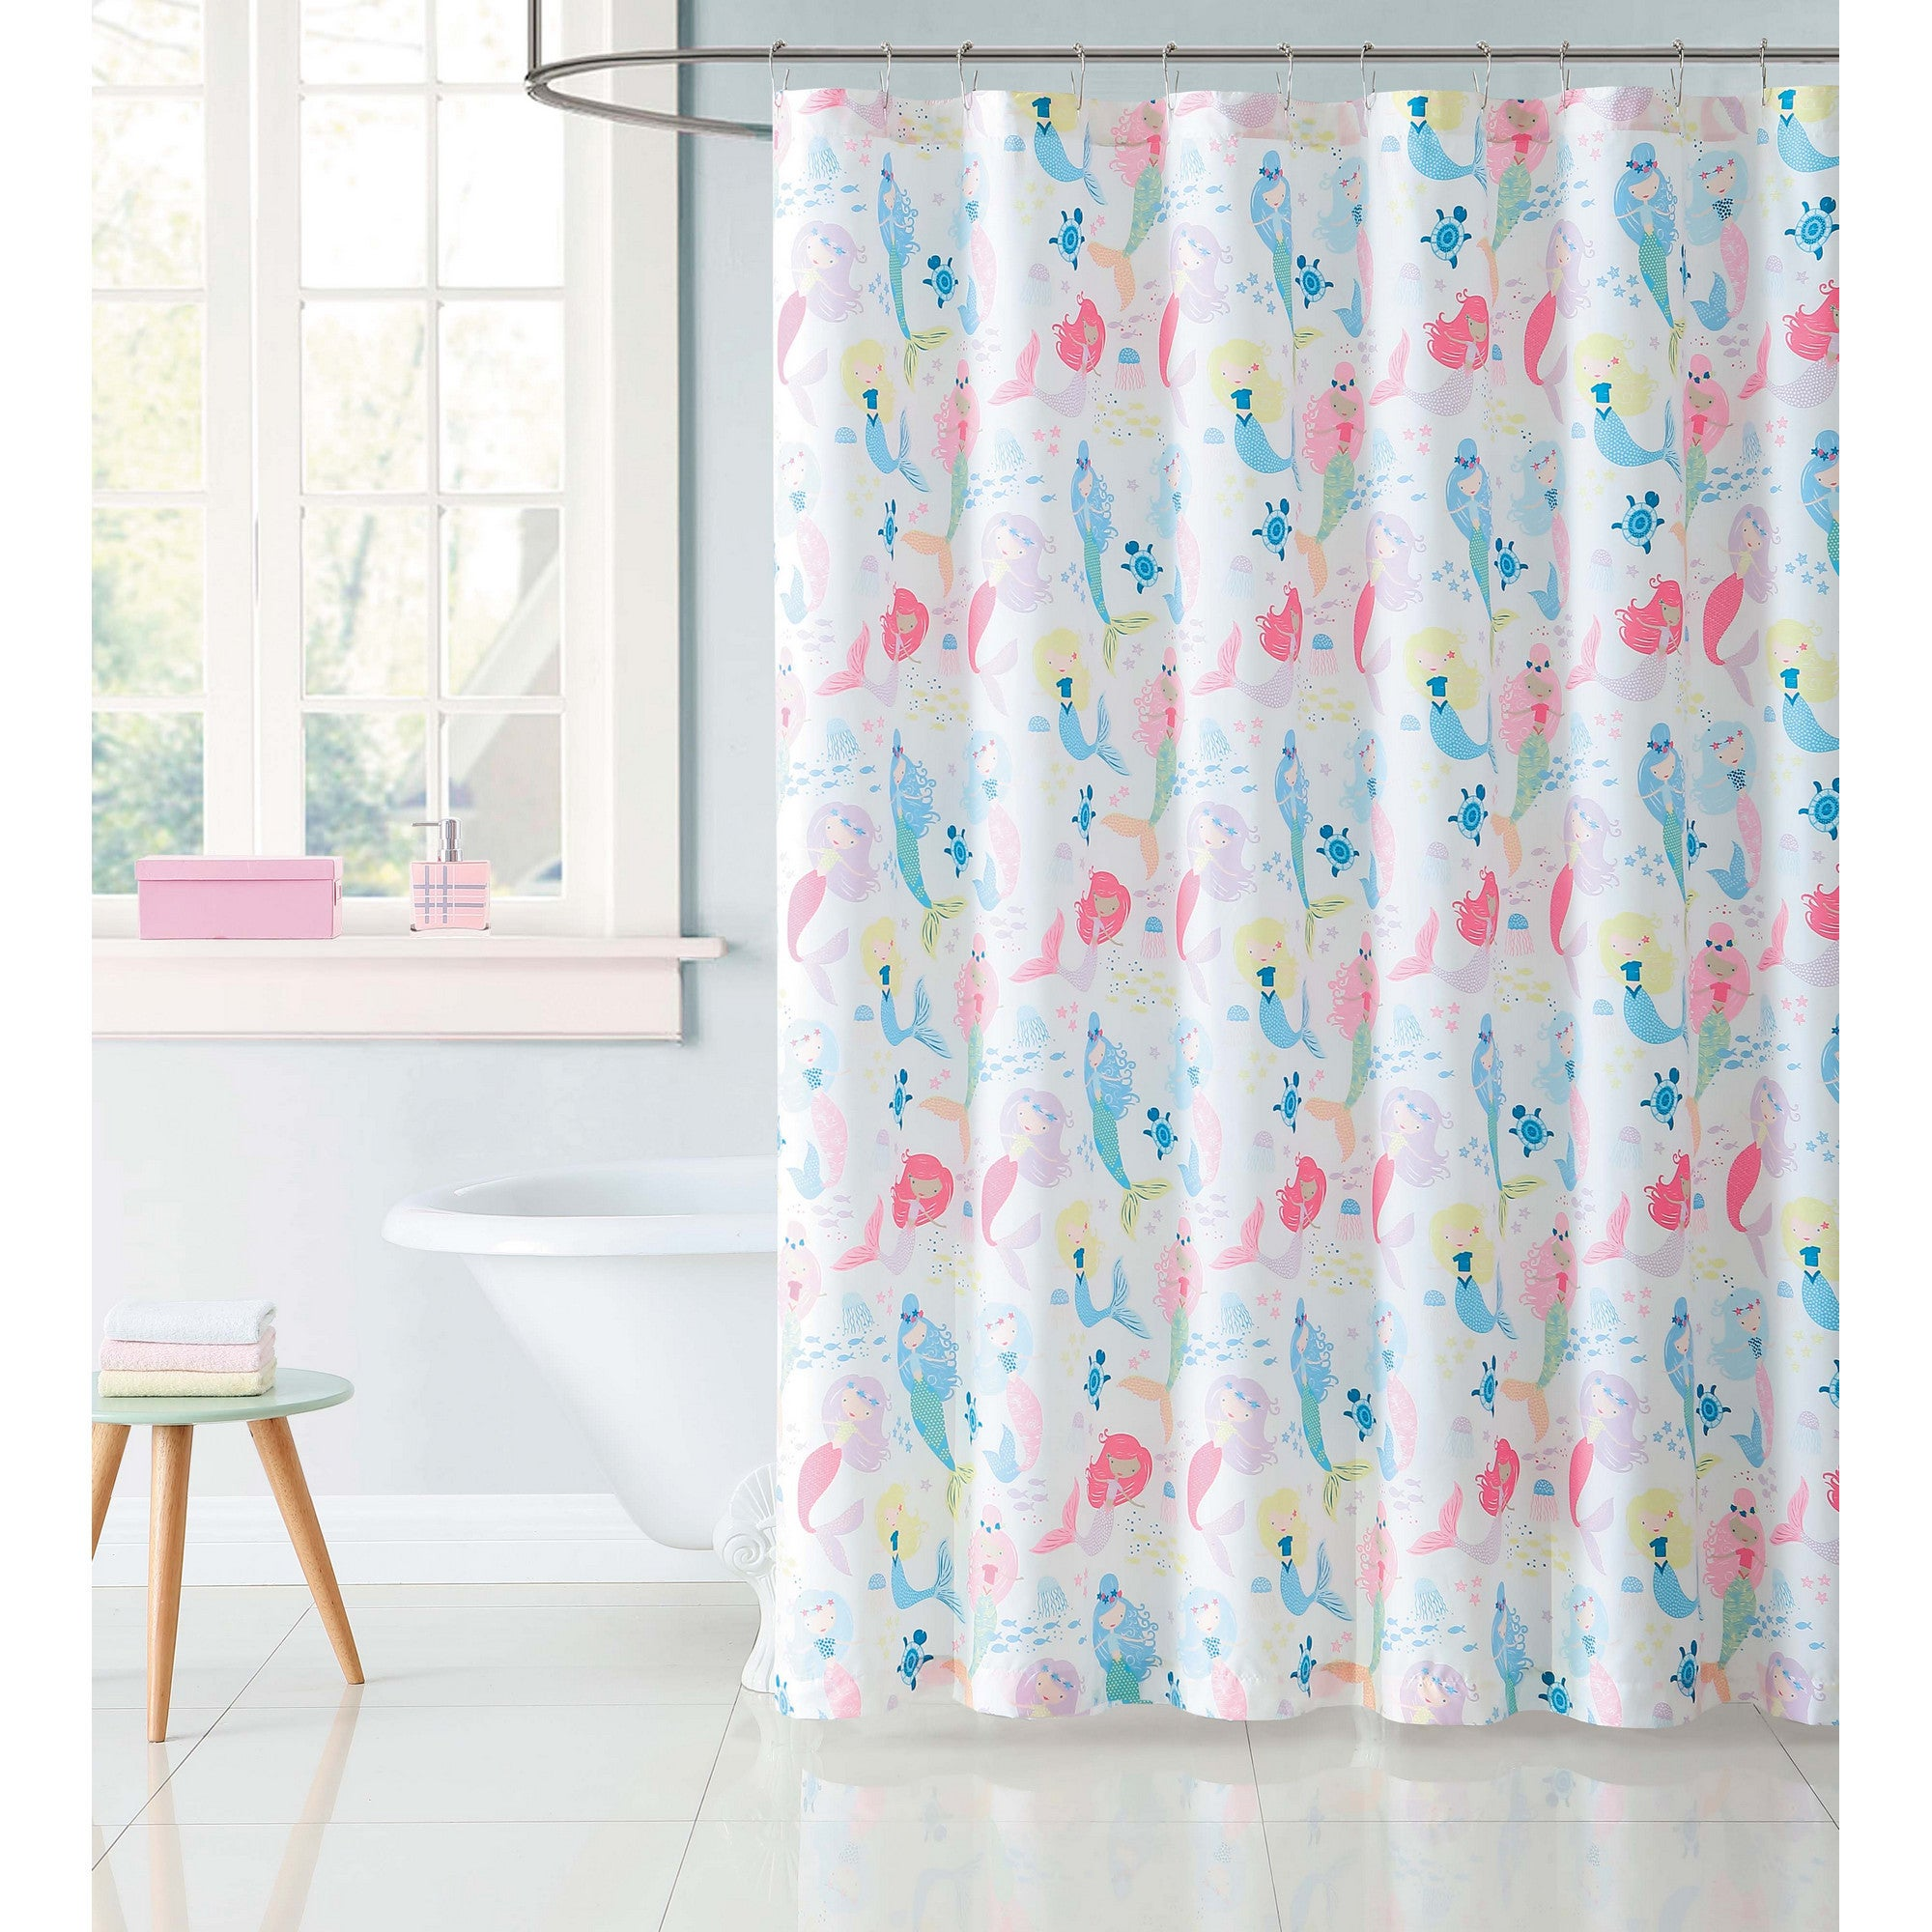 picture curtains victorian luxury of lace x curtain stall shower